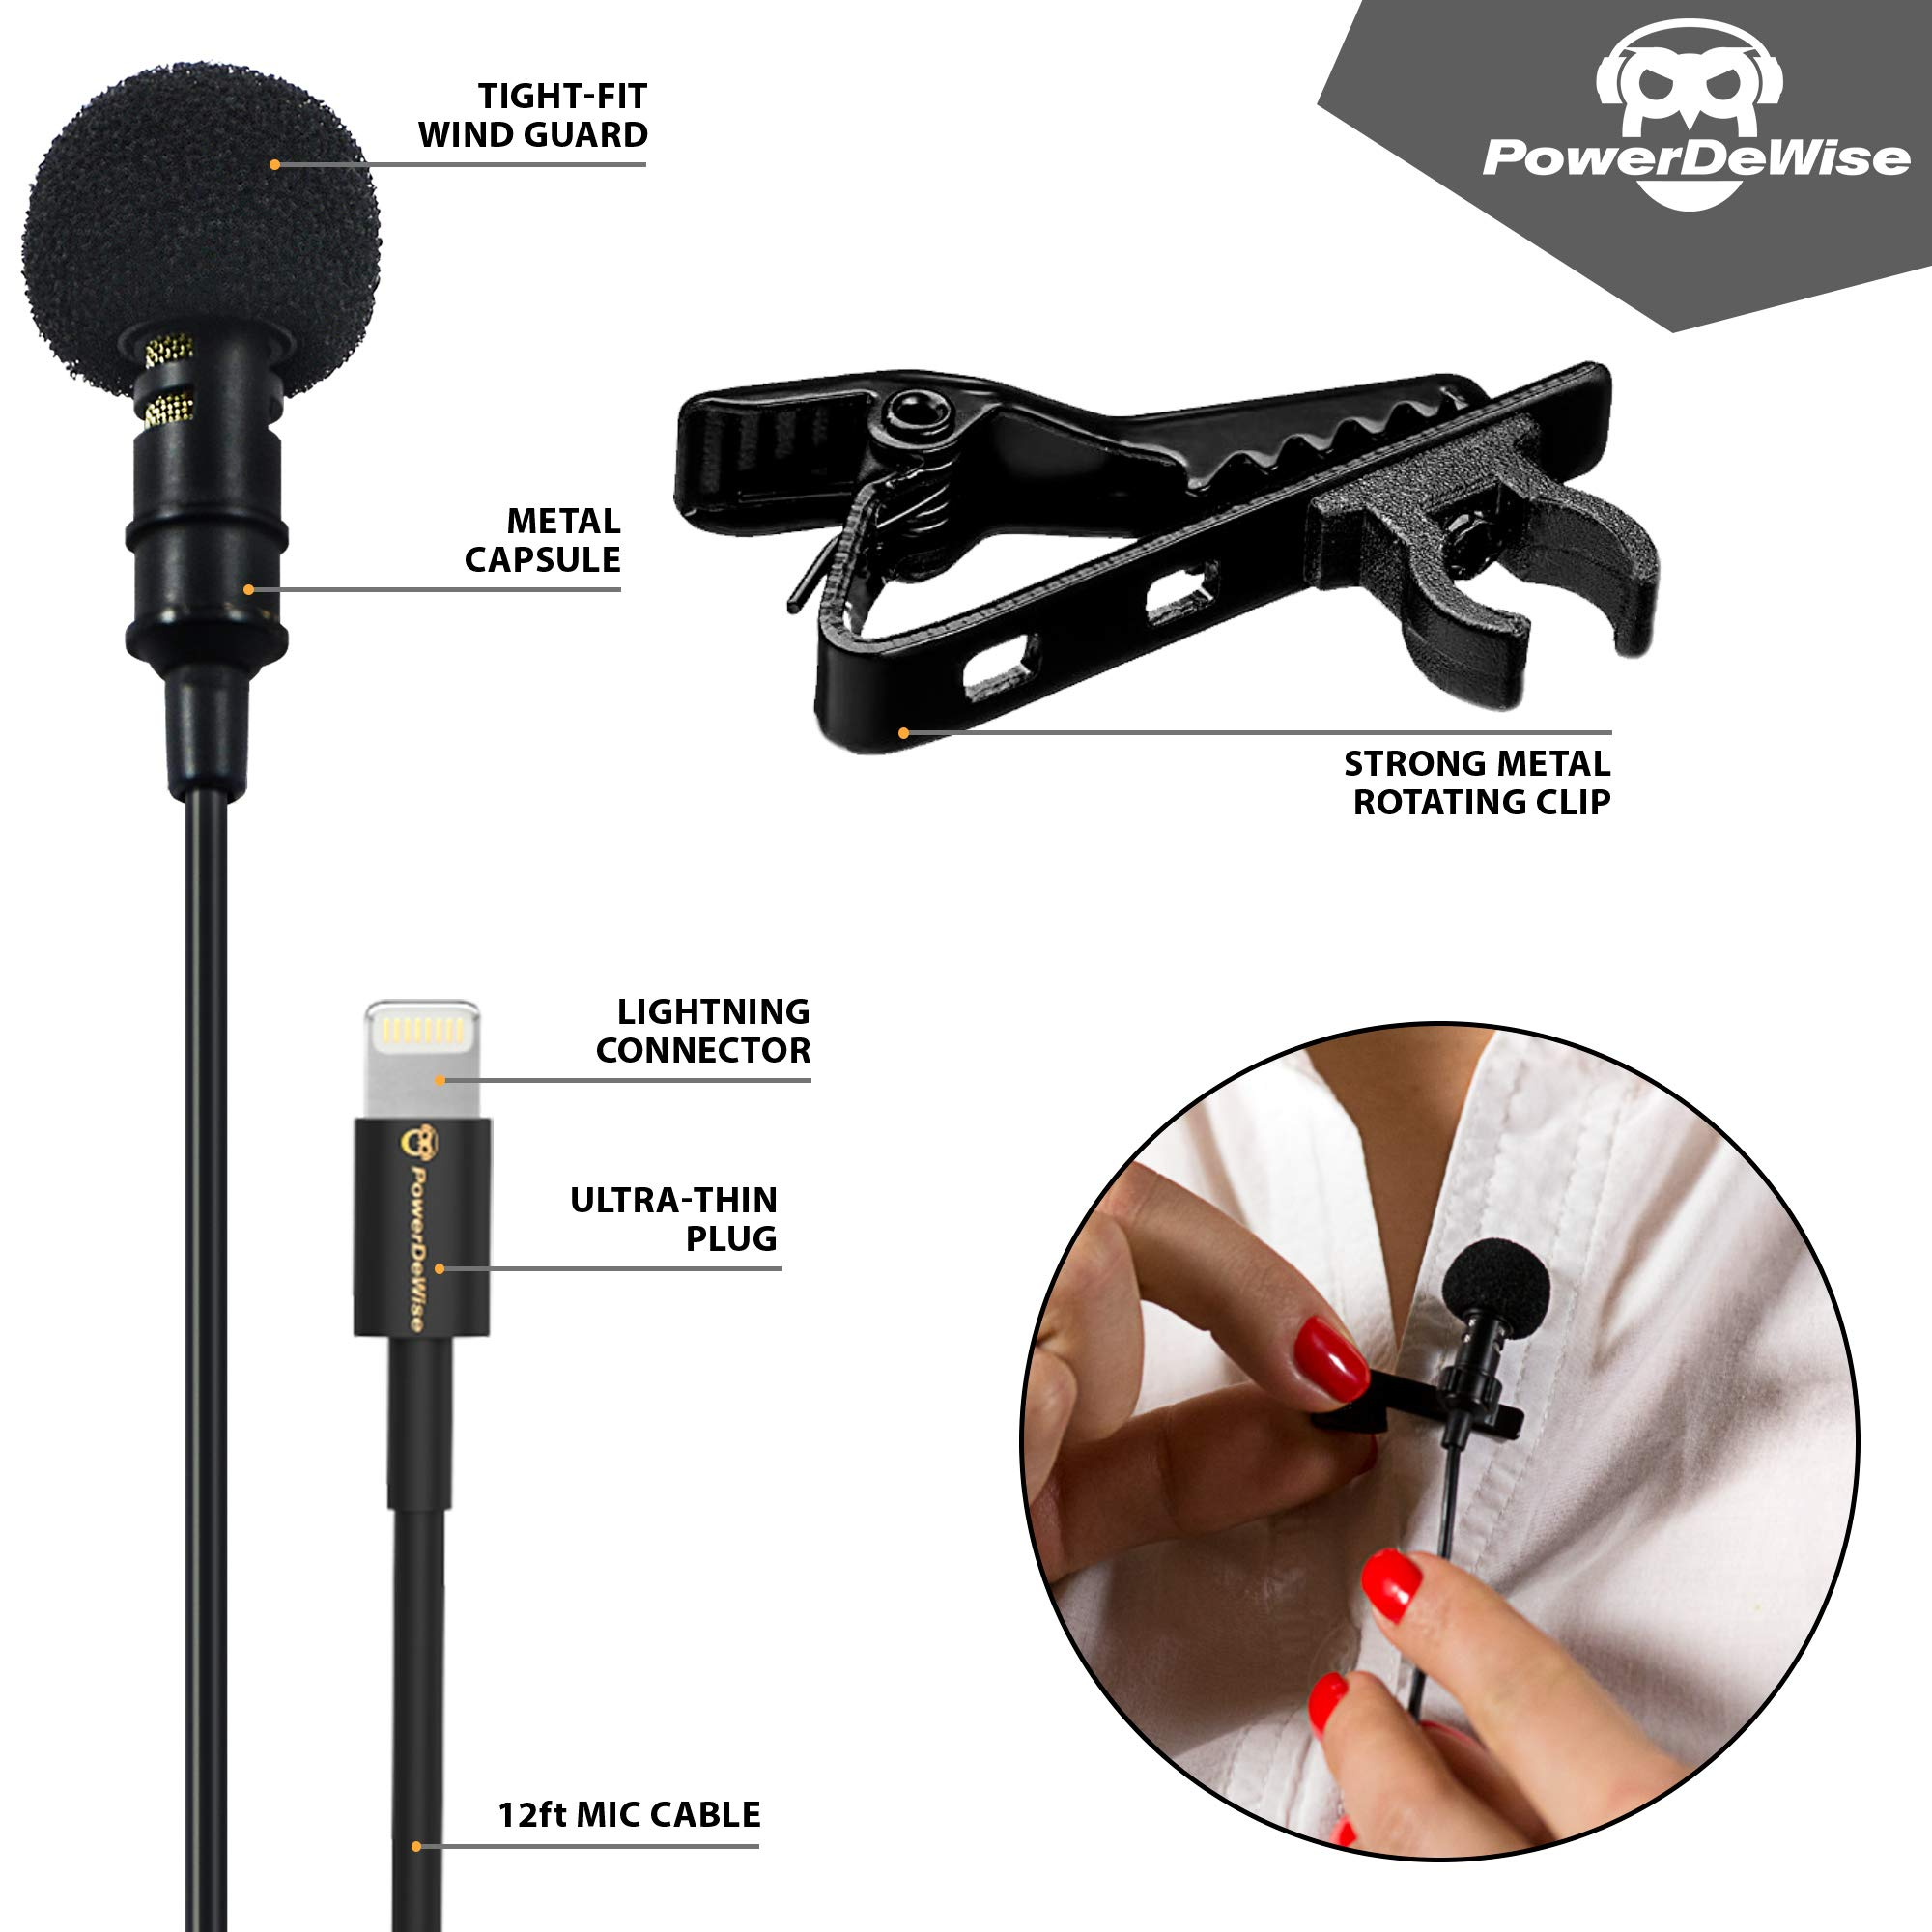 PowerDeWise Microphone for iPhone with Lightning Connector - iPhone Lightning Microphone - Excellent Mic iPhone 6 7 8 X by PowerDeWise (Image #6)